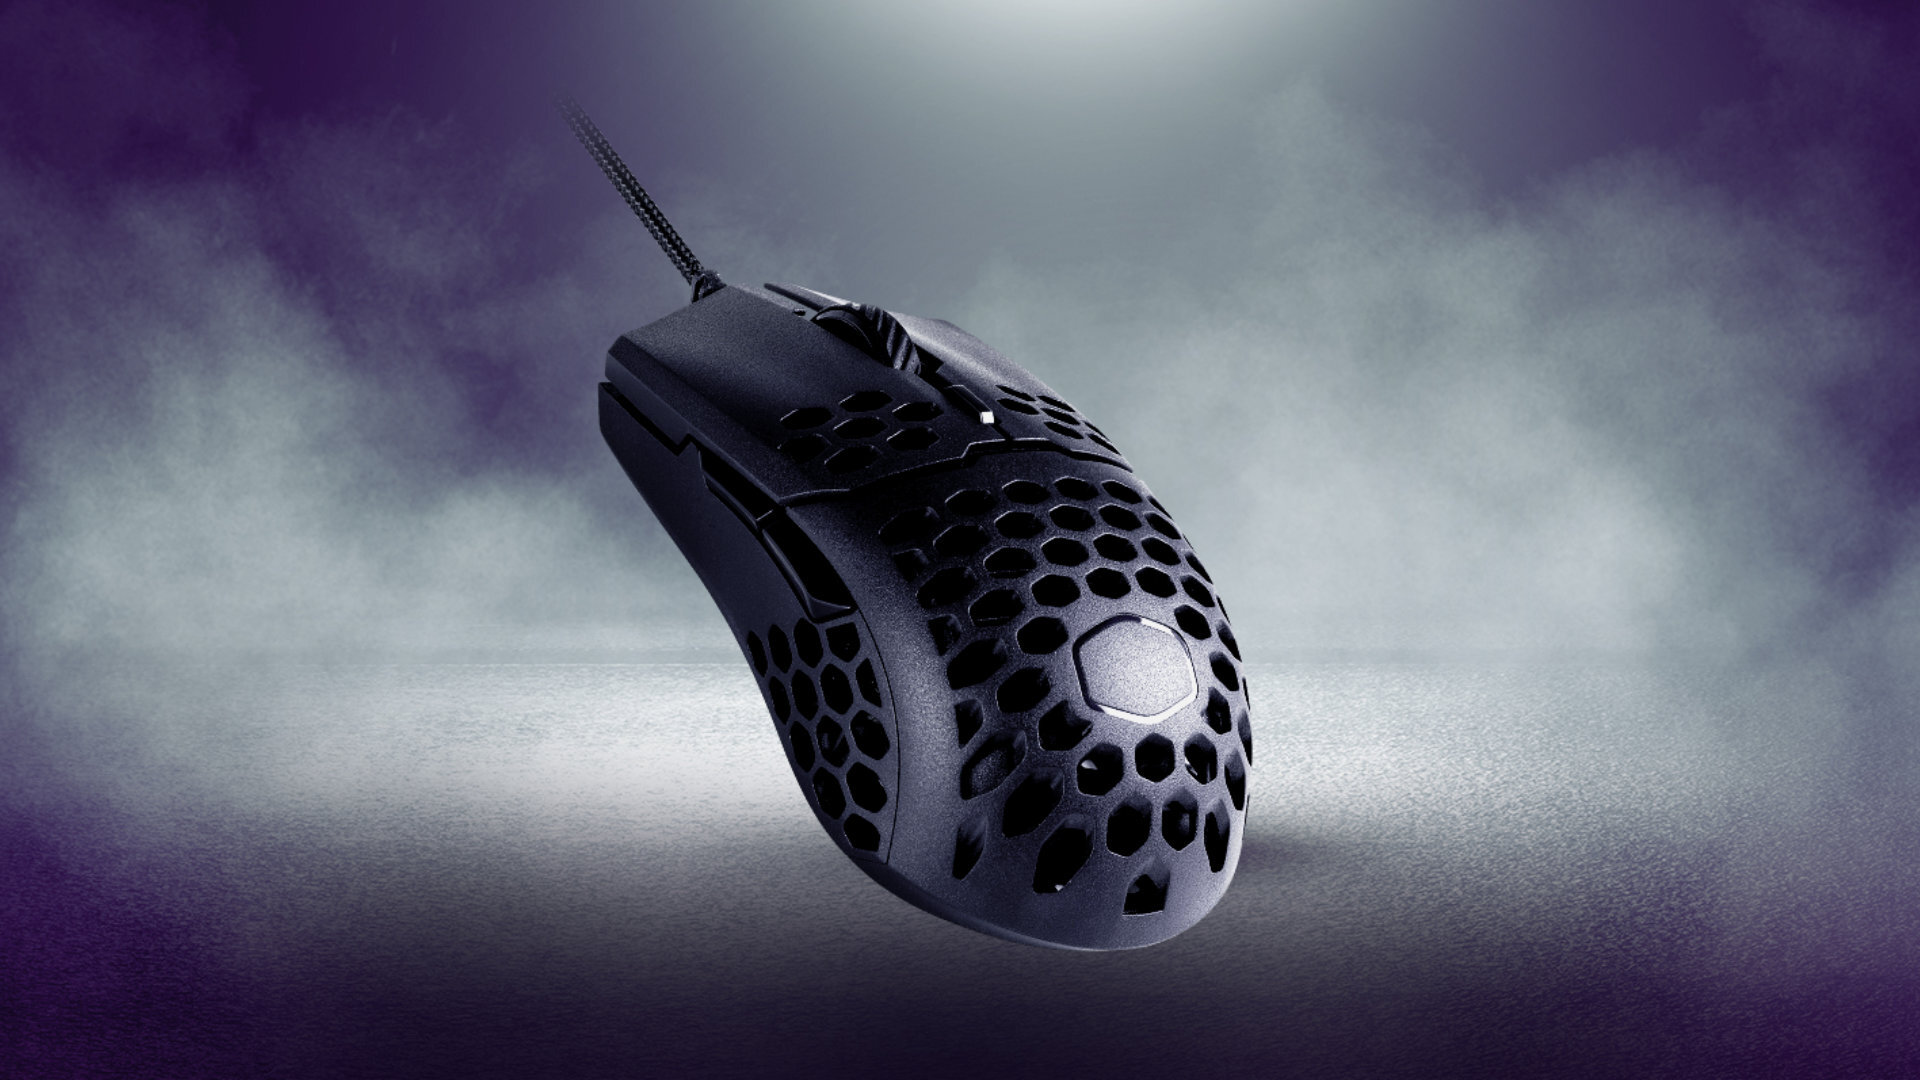 Save 20% off Cooler Master's lightweight gaming mouse